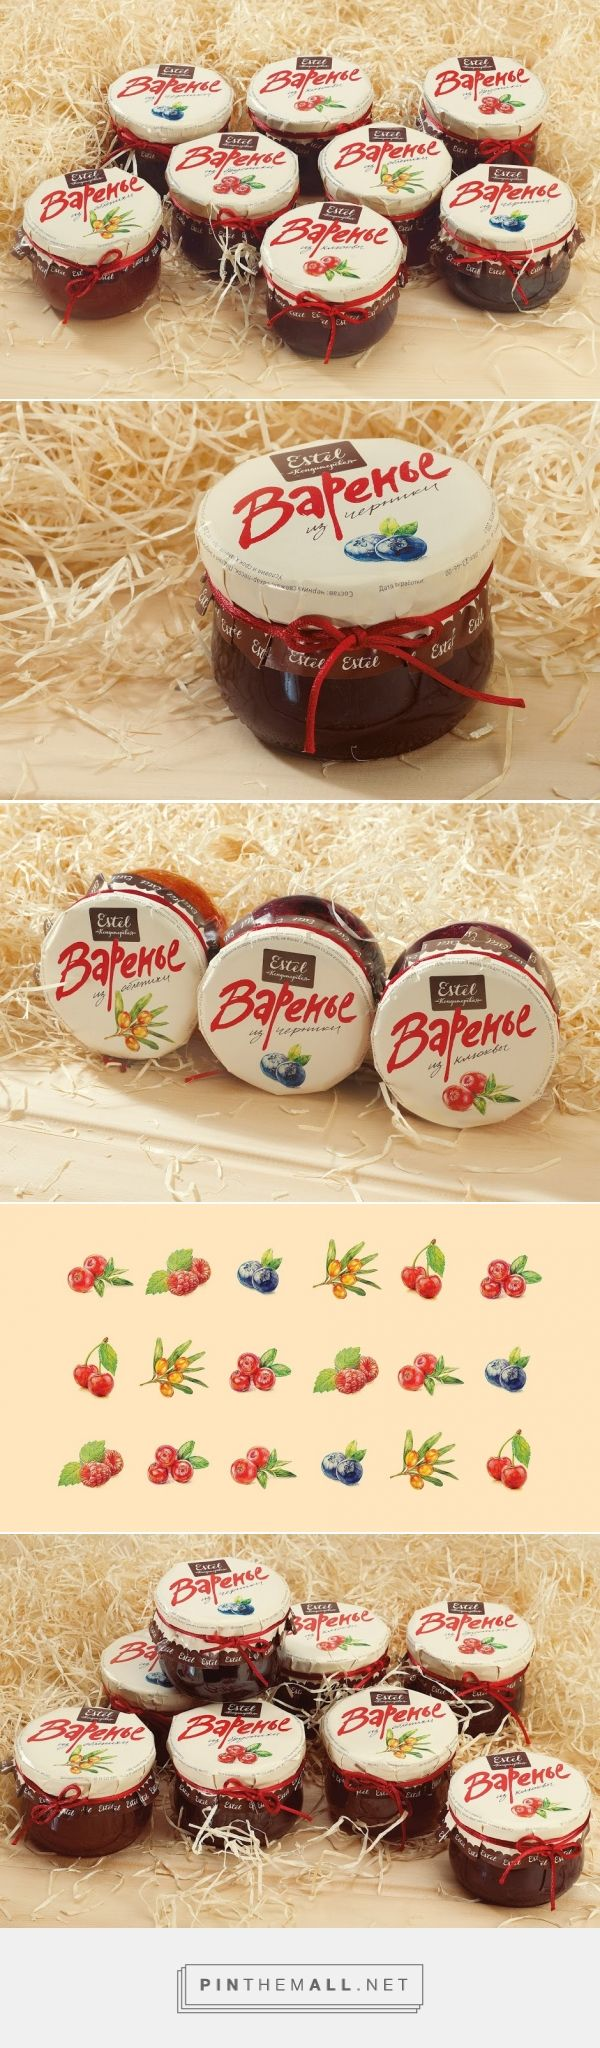 Estel Confectionery Jam - Packaging of the World - Creative Package Design Gallery - http://www.packagingoftheworld.com/2016/02/estel-confectionery-jam.html